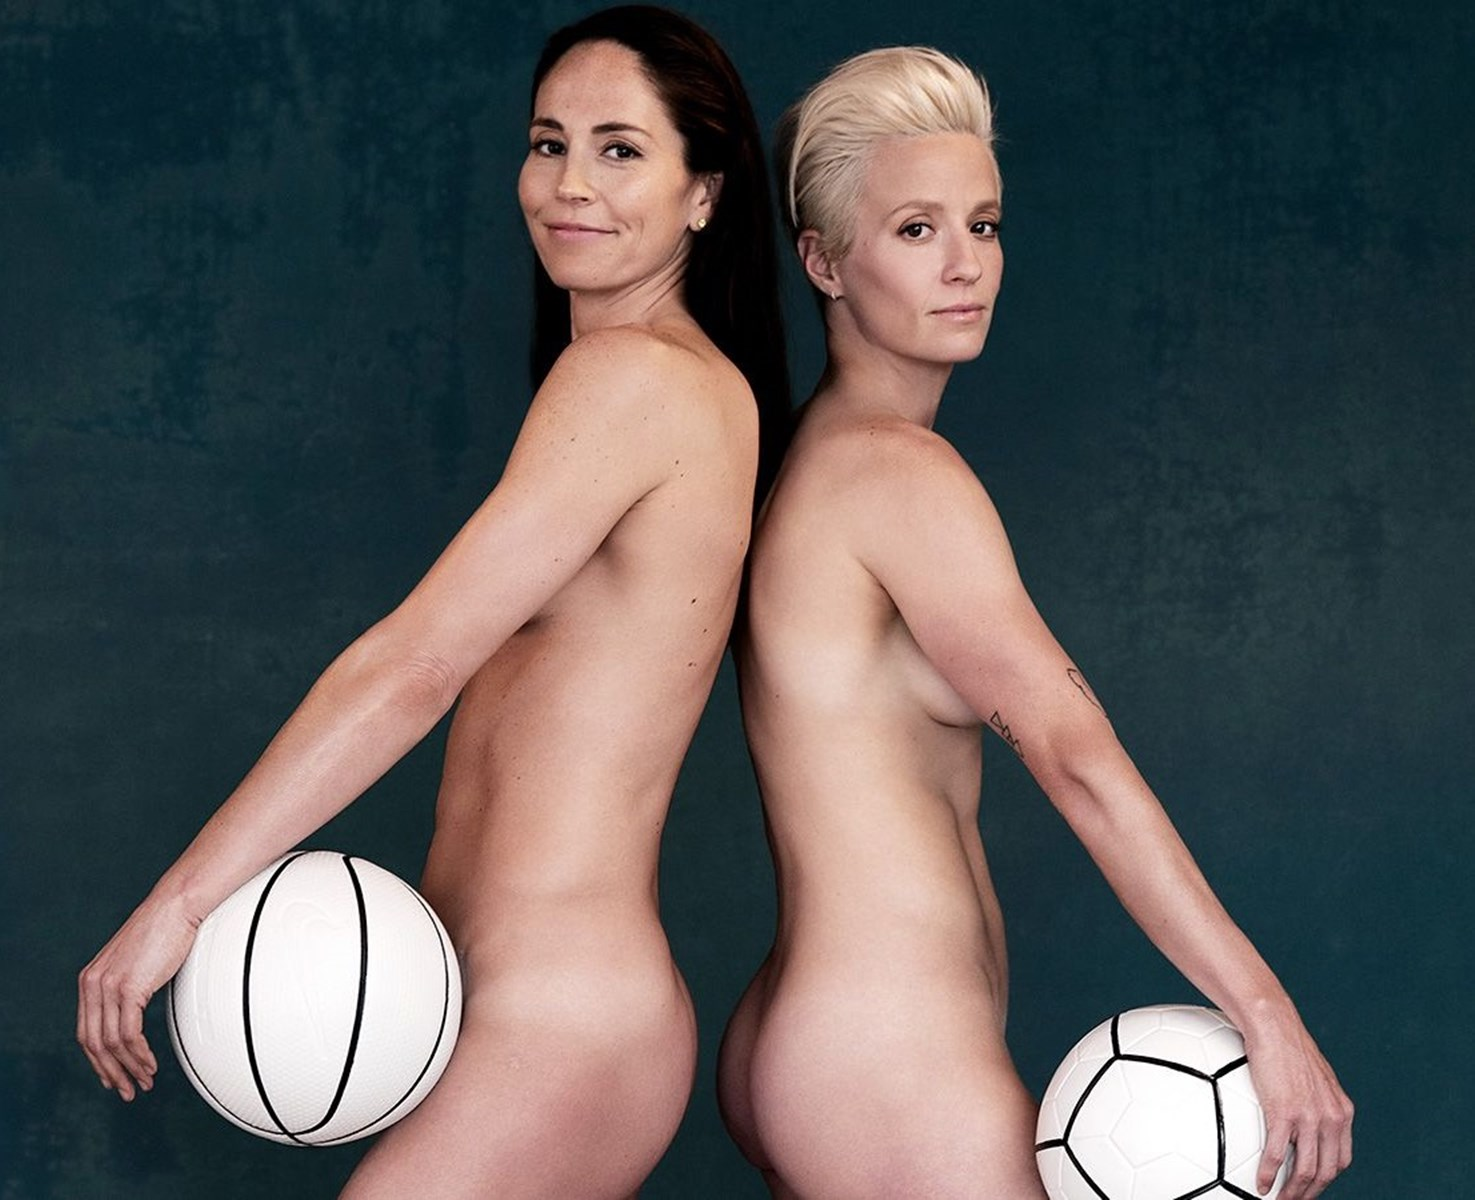 Megan Rapinoe Shows Her Nude Ass And Tells Trump To Kiss It